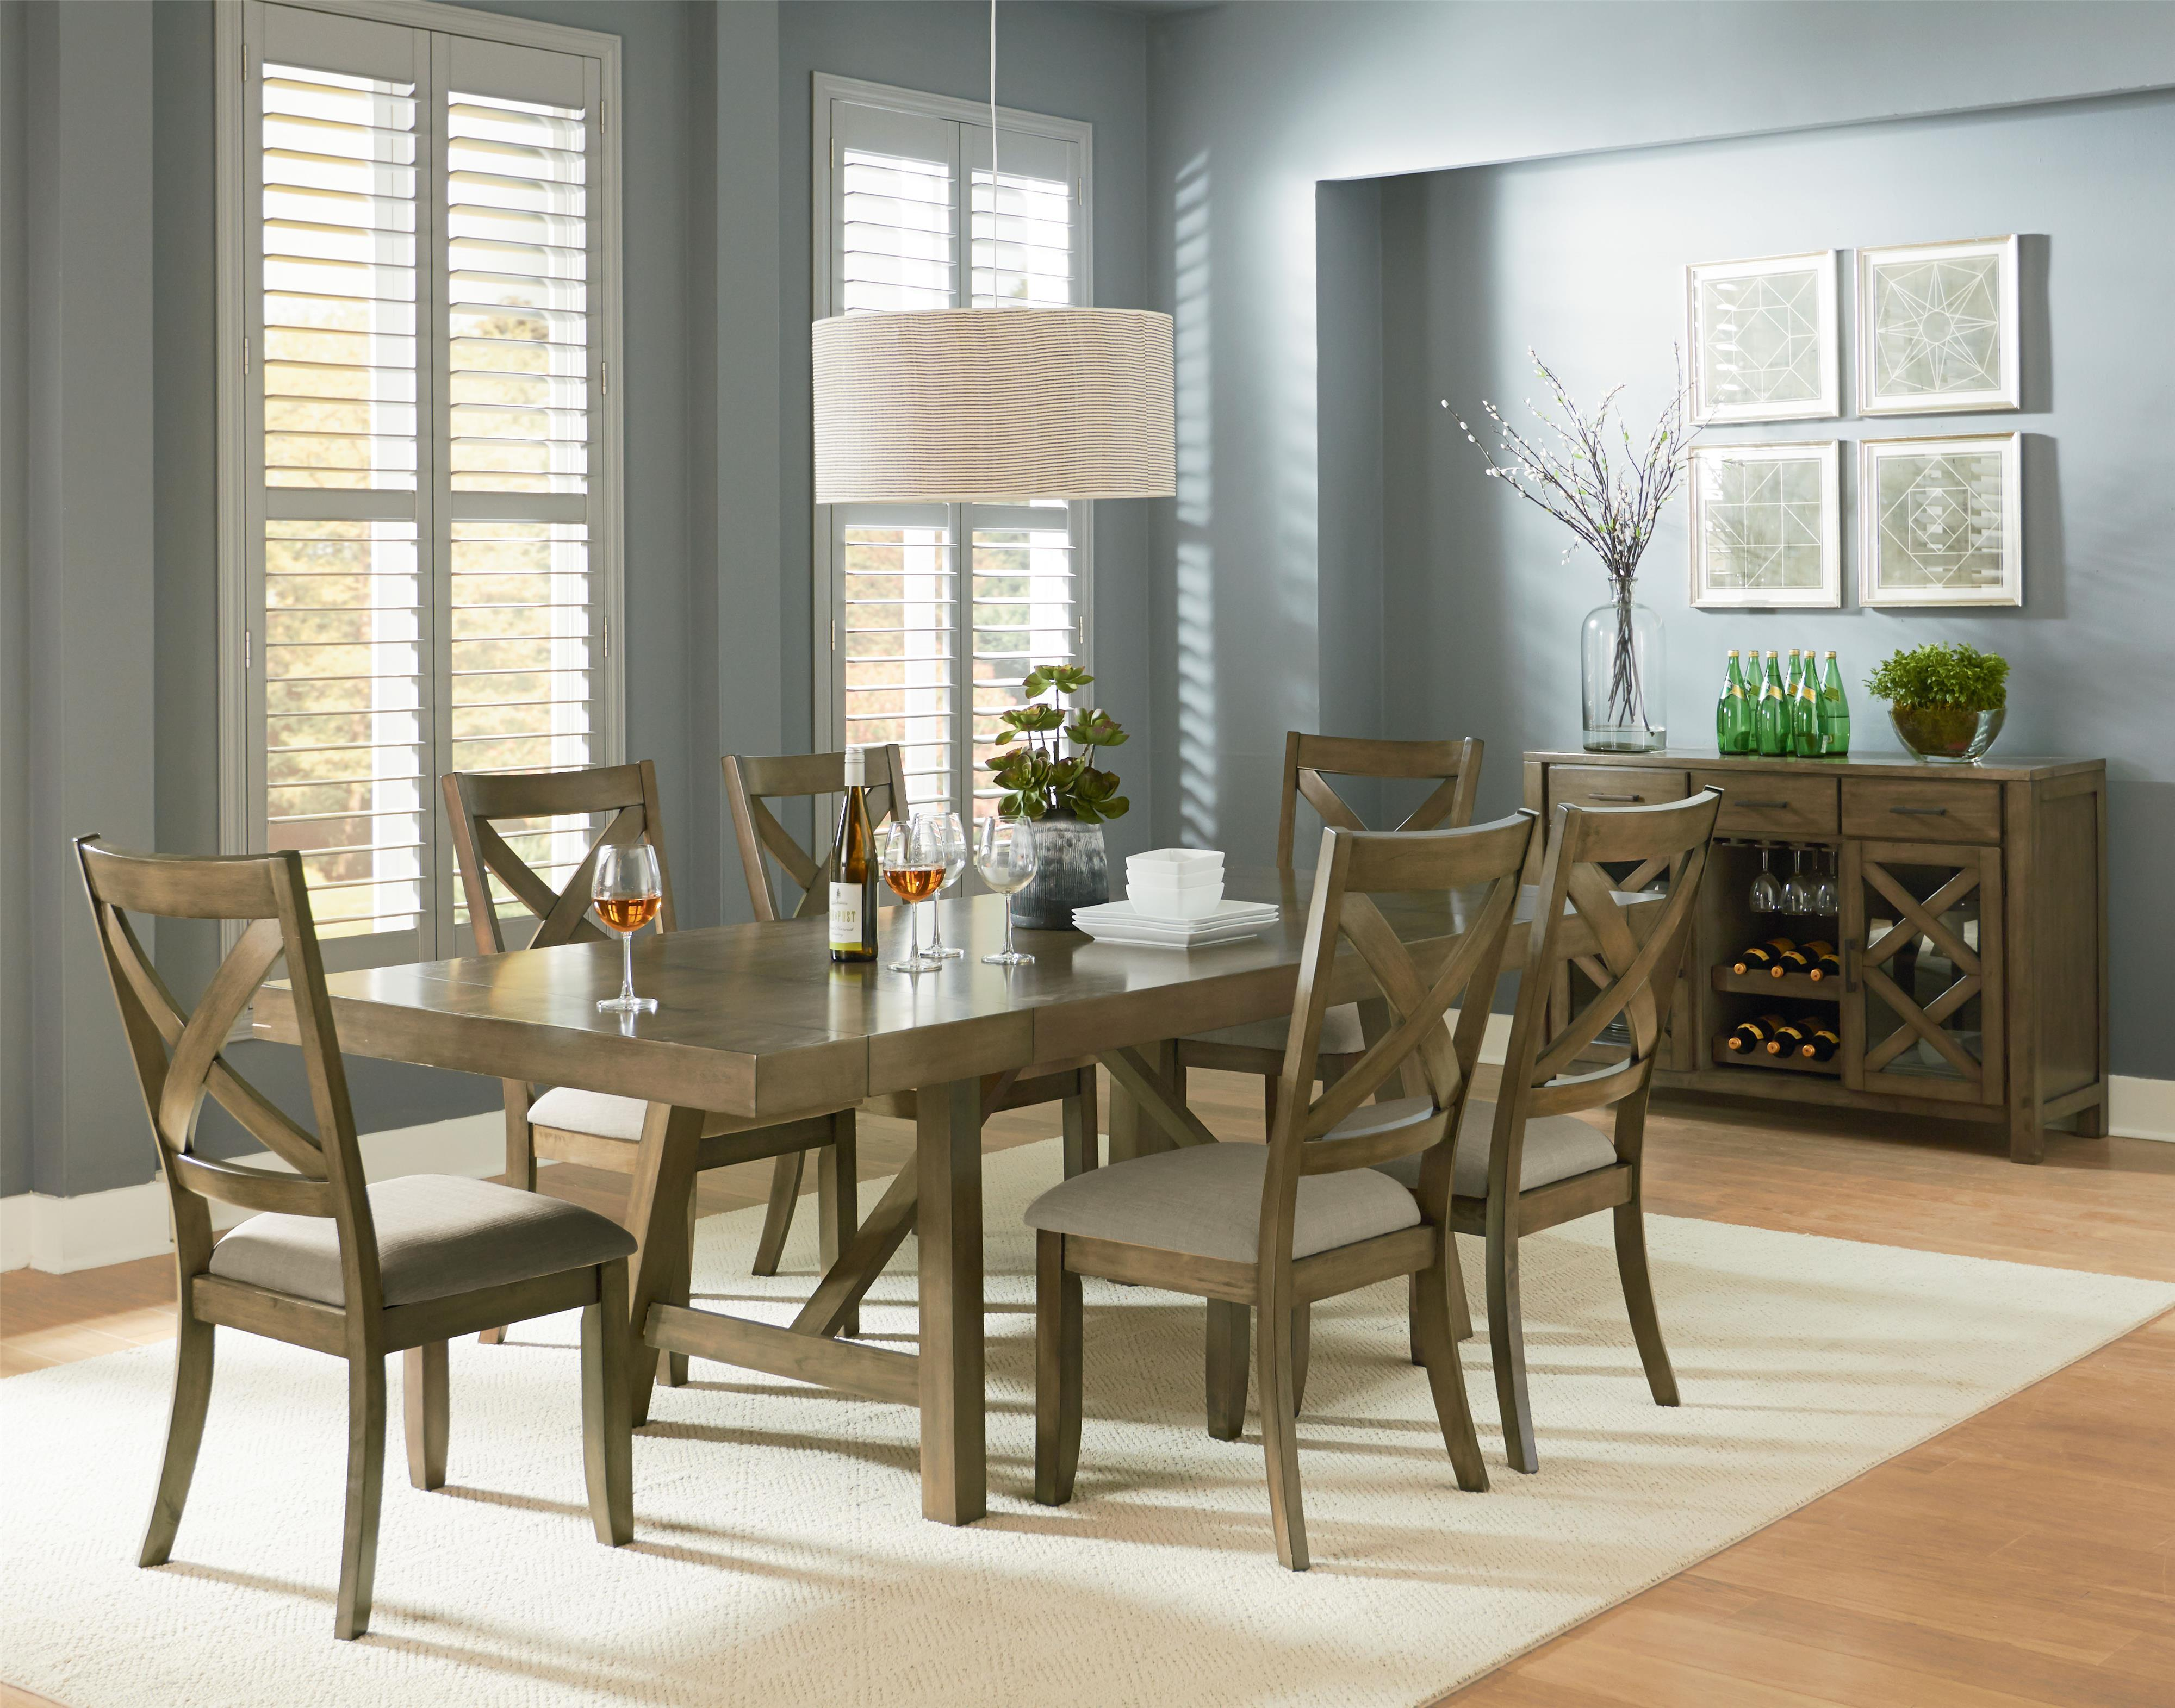 Standard Furniture Omaha Grey Casual Dining Room Group - Item Number: 16680 Dining Room Group 2